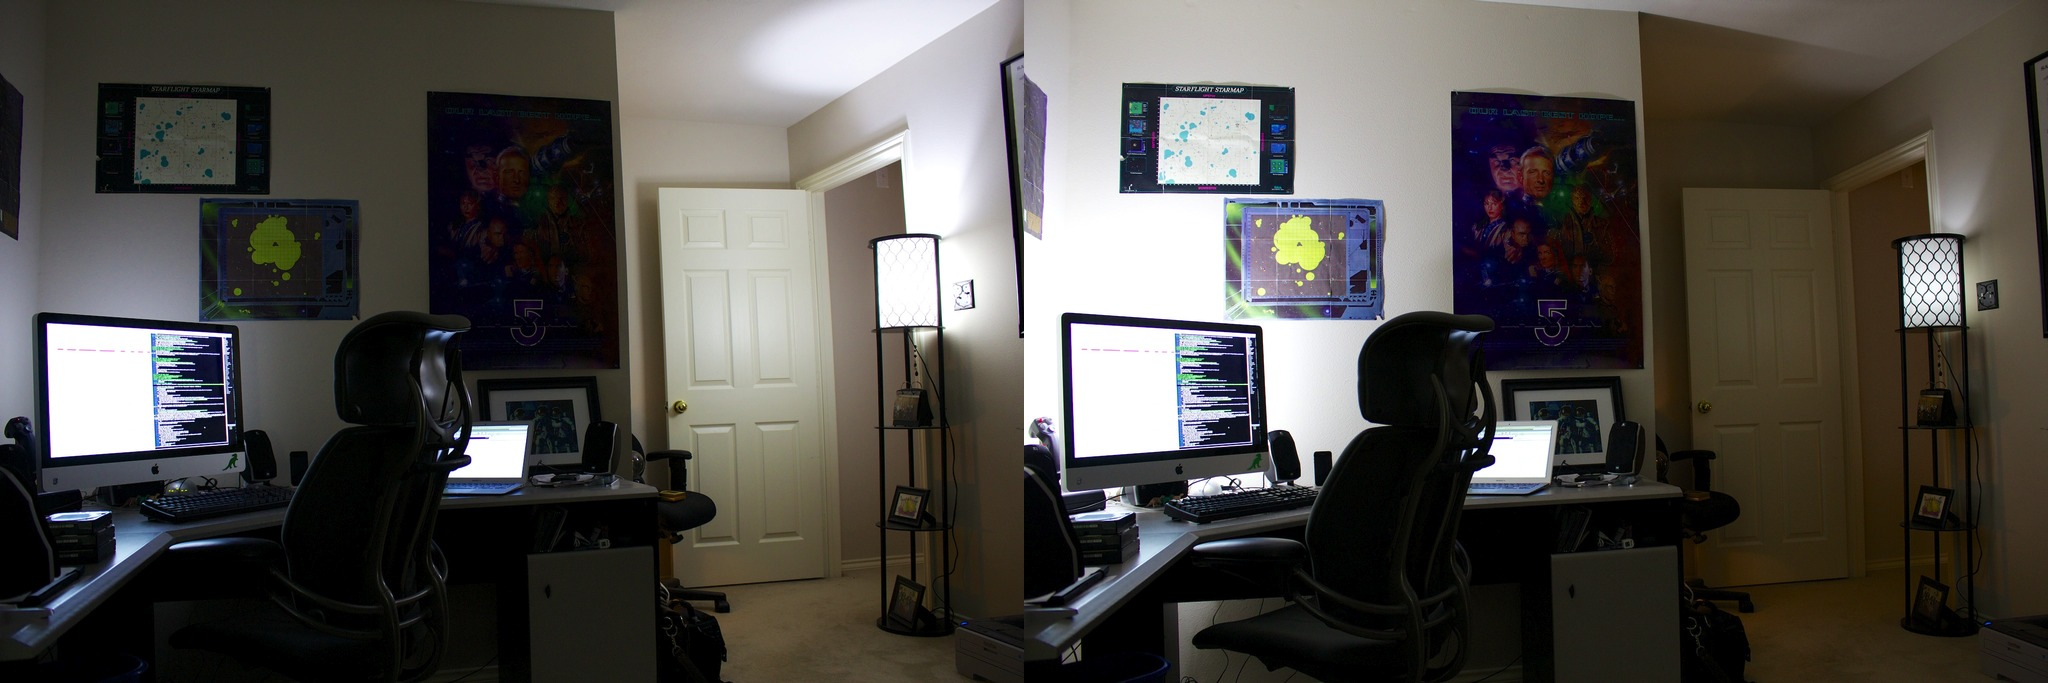 On the left, the light behind the computer is at its dimmest and the door light is at max; at right, it's the opposite, with the computer light at max and the door light dim.